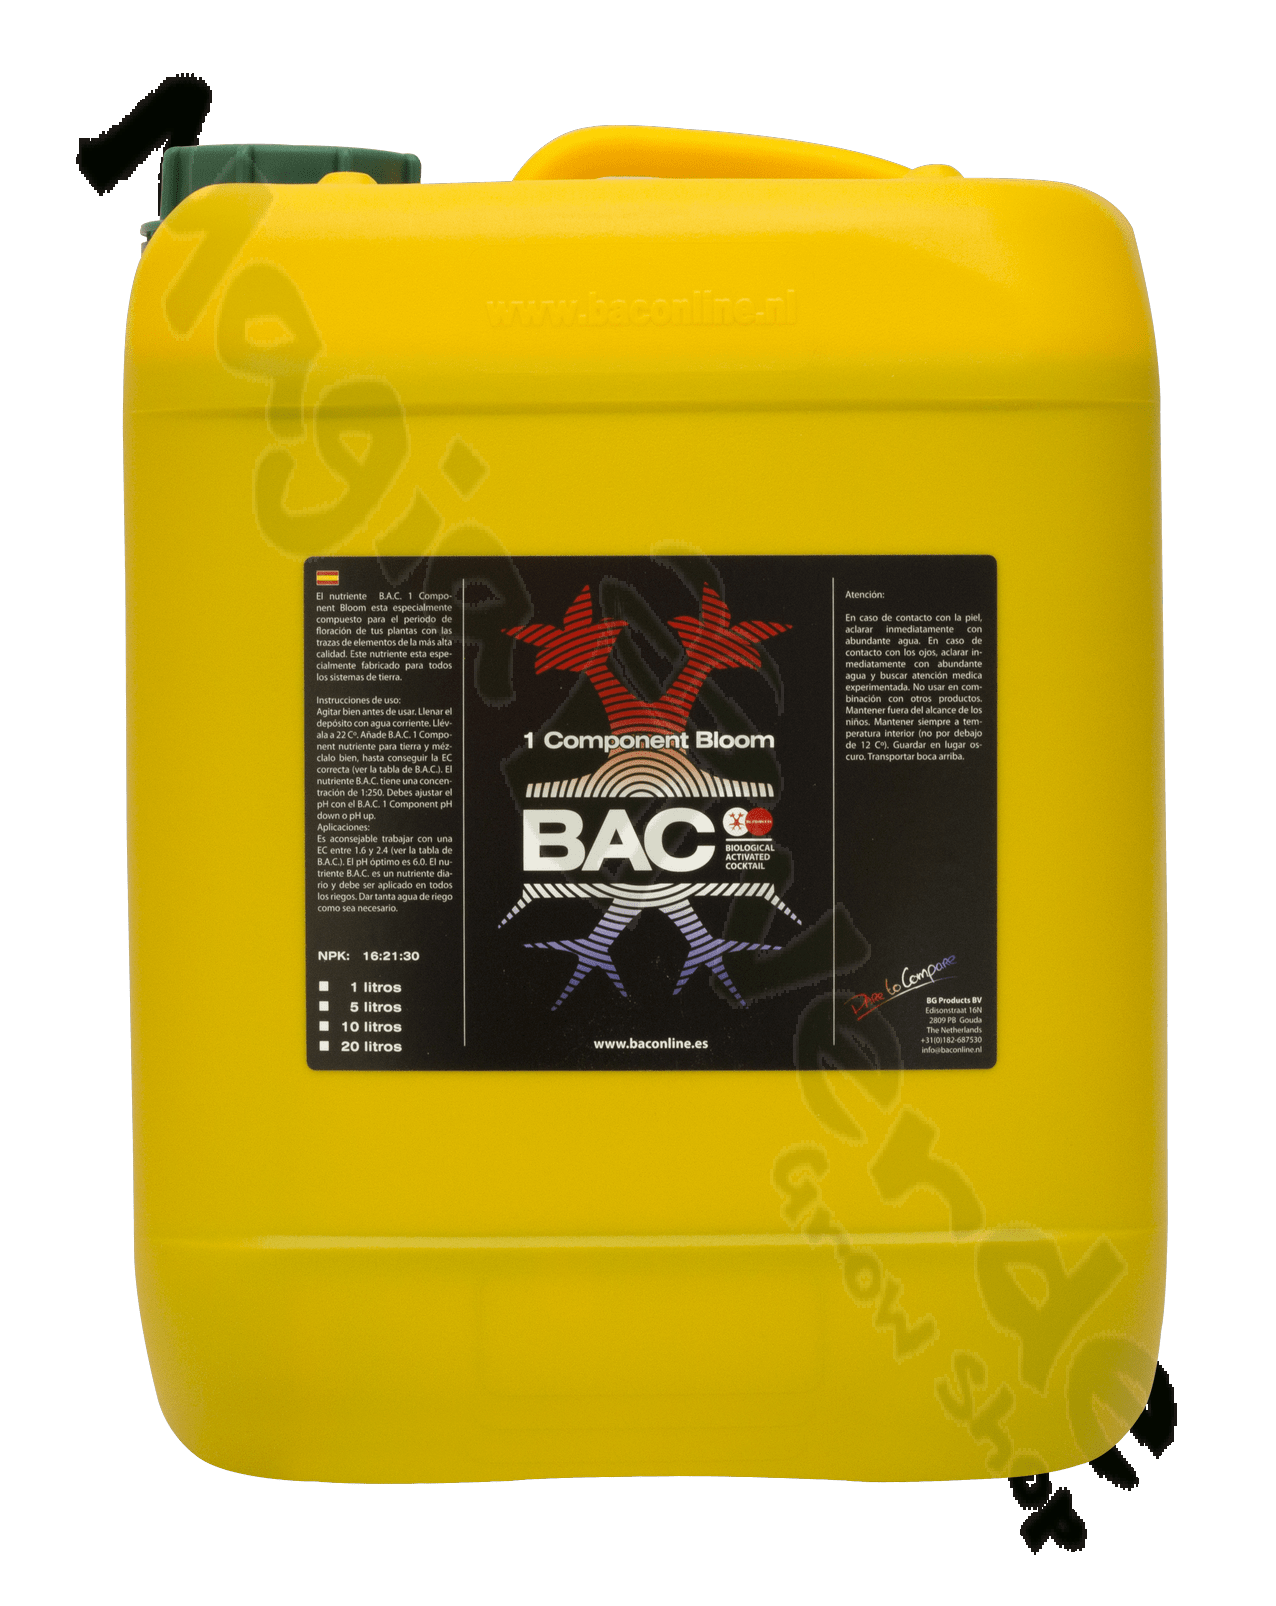 BAC One Component Bloom 10 L